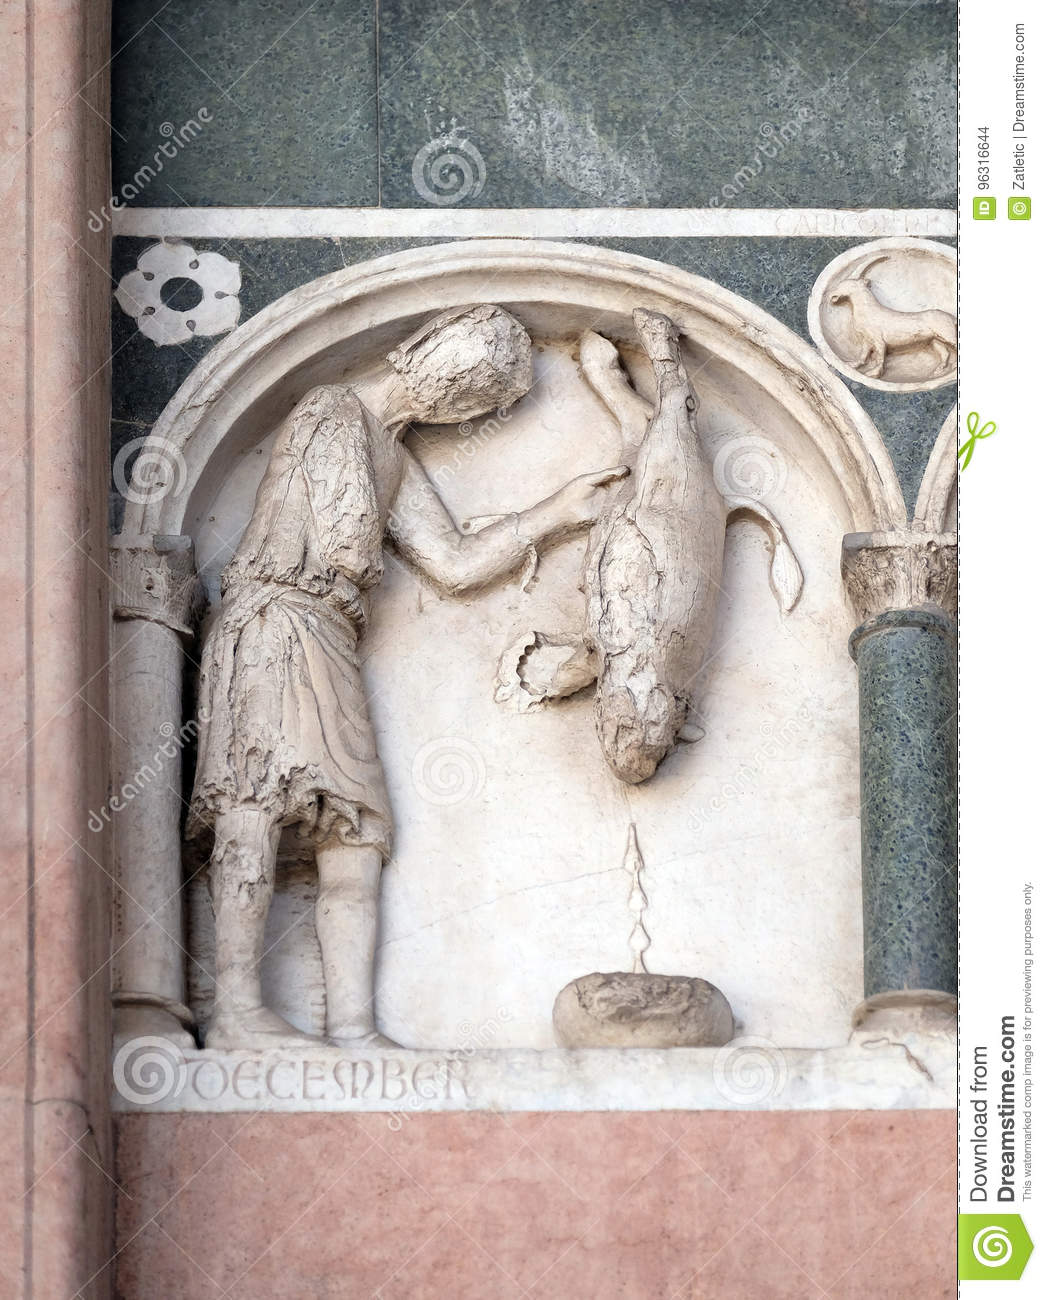 December, detail of the bass-relief representing the Labor of the months of the year, Cathedral in Lucca, Italy